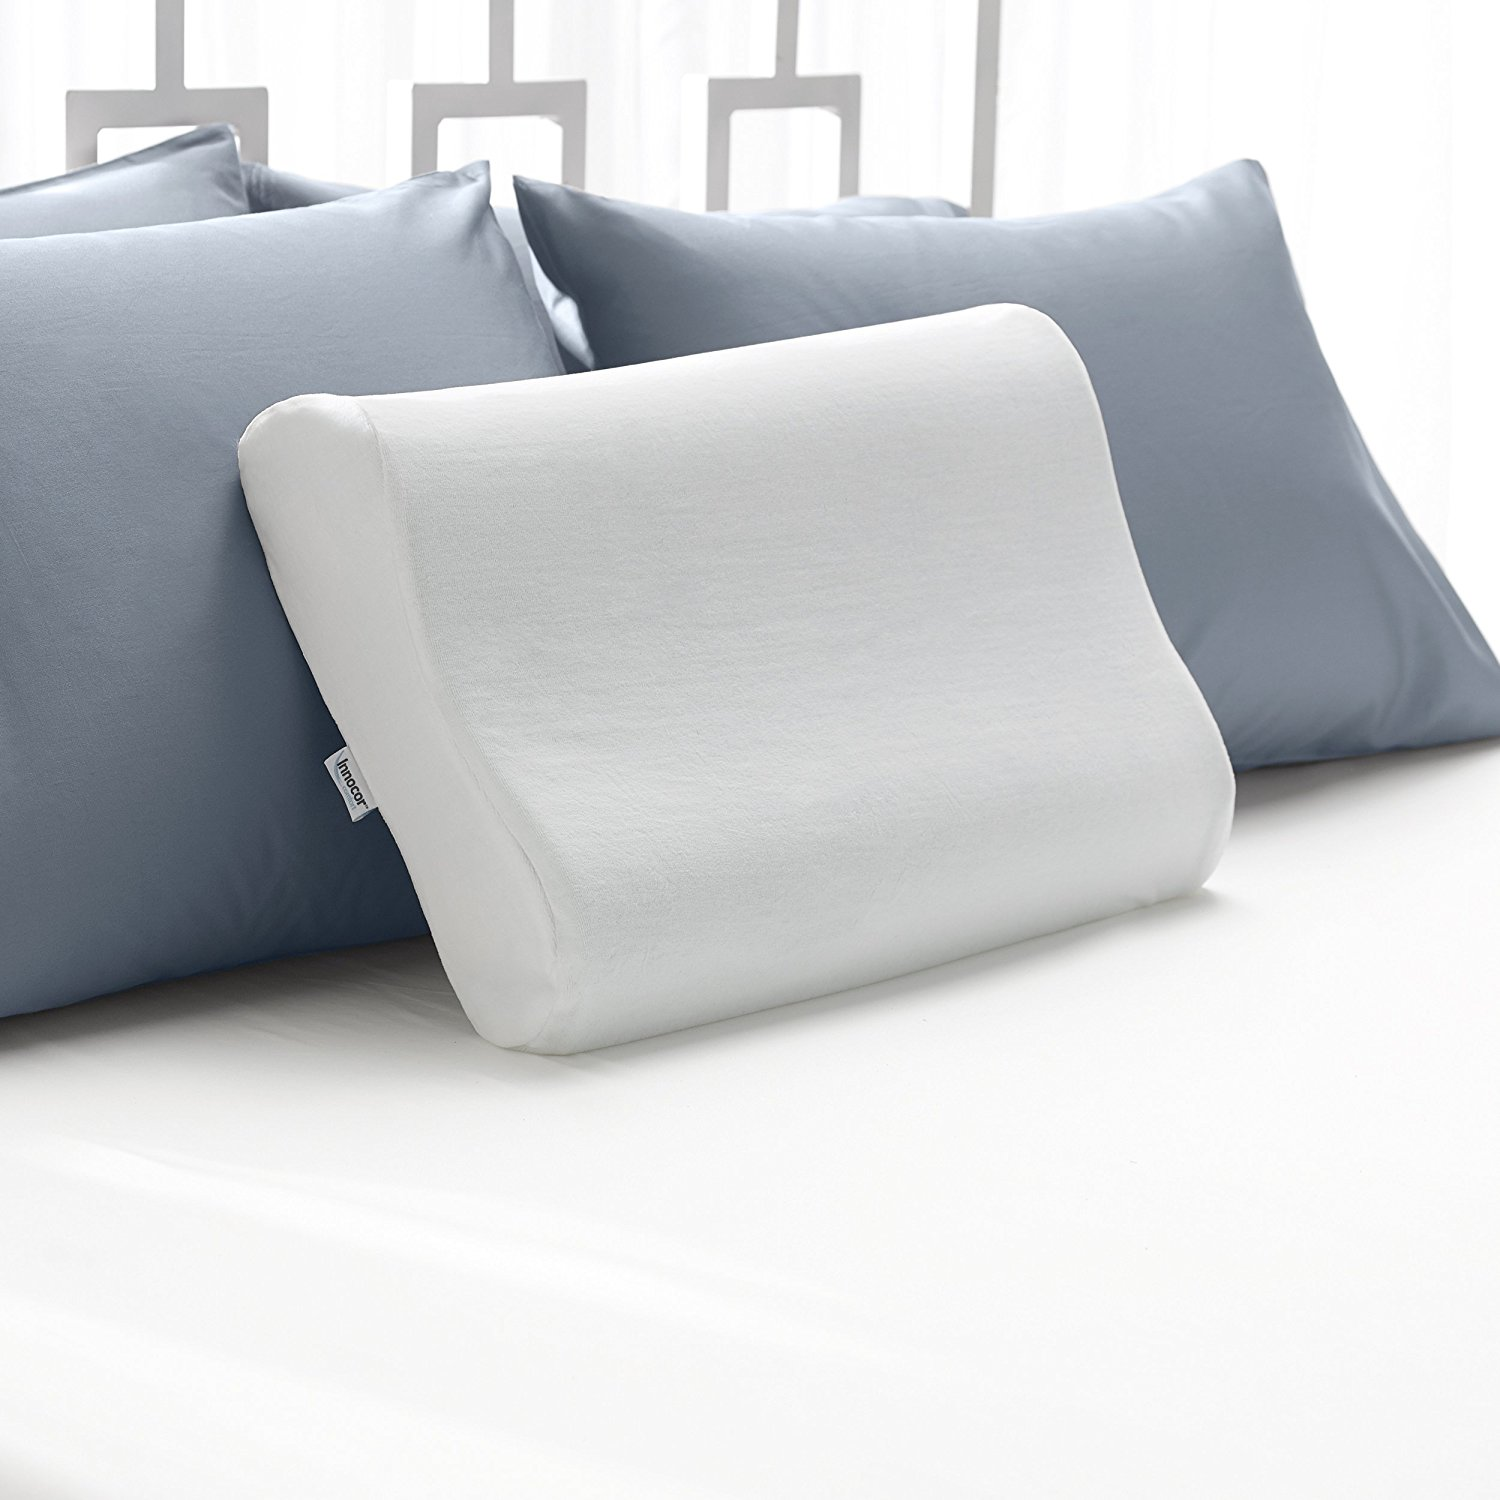 Sleep Innovations Contour Pillow Bamboo Pillow Reviews